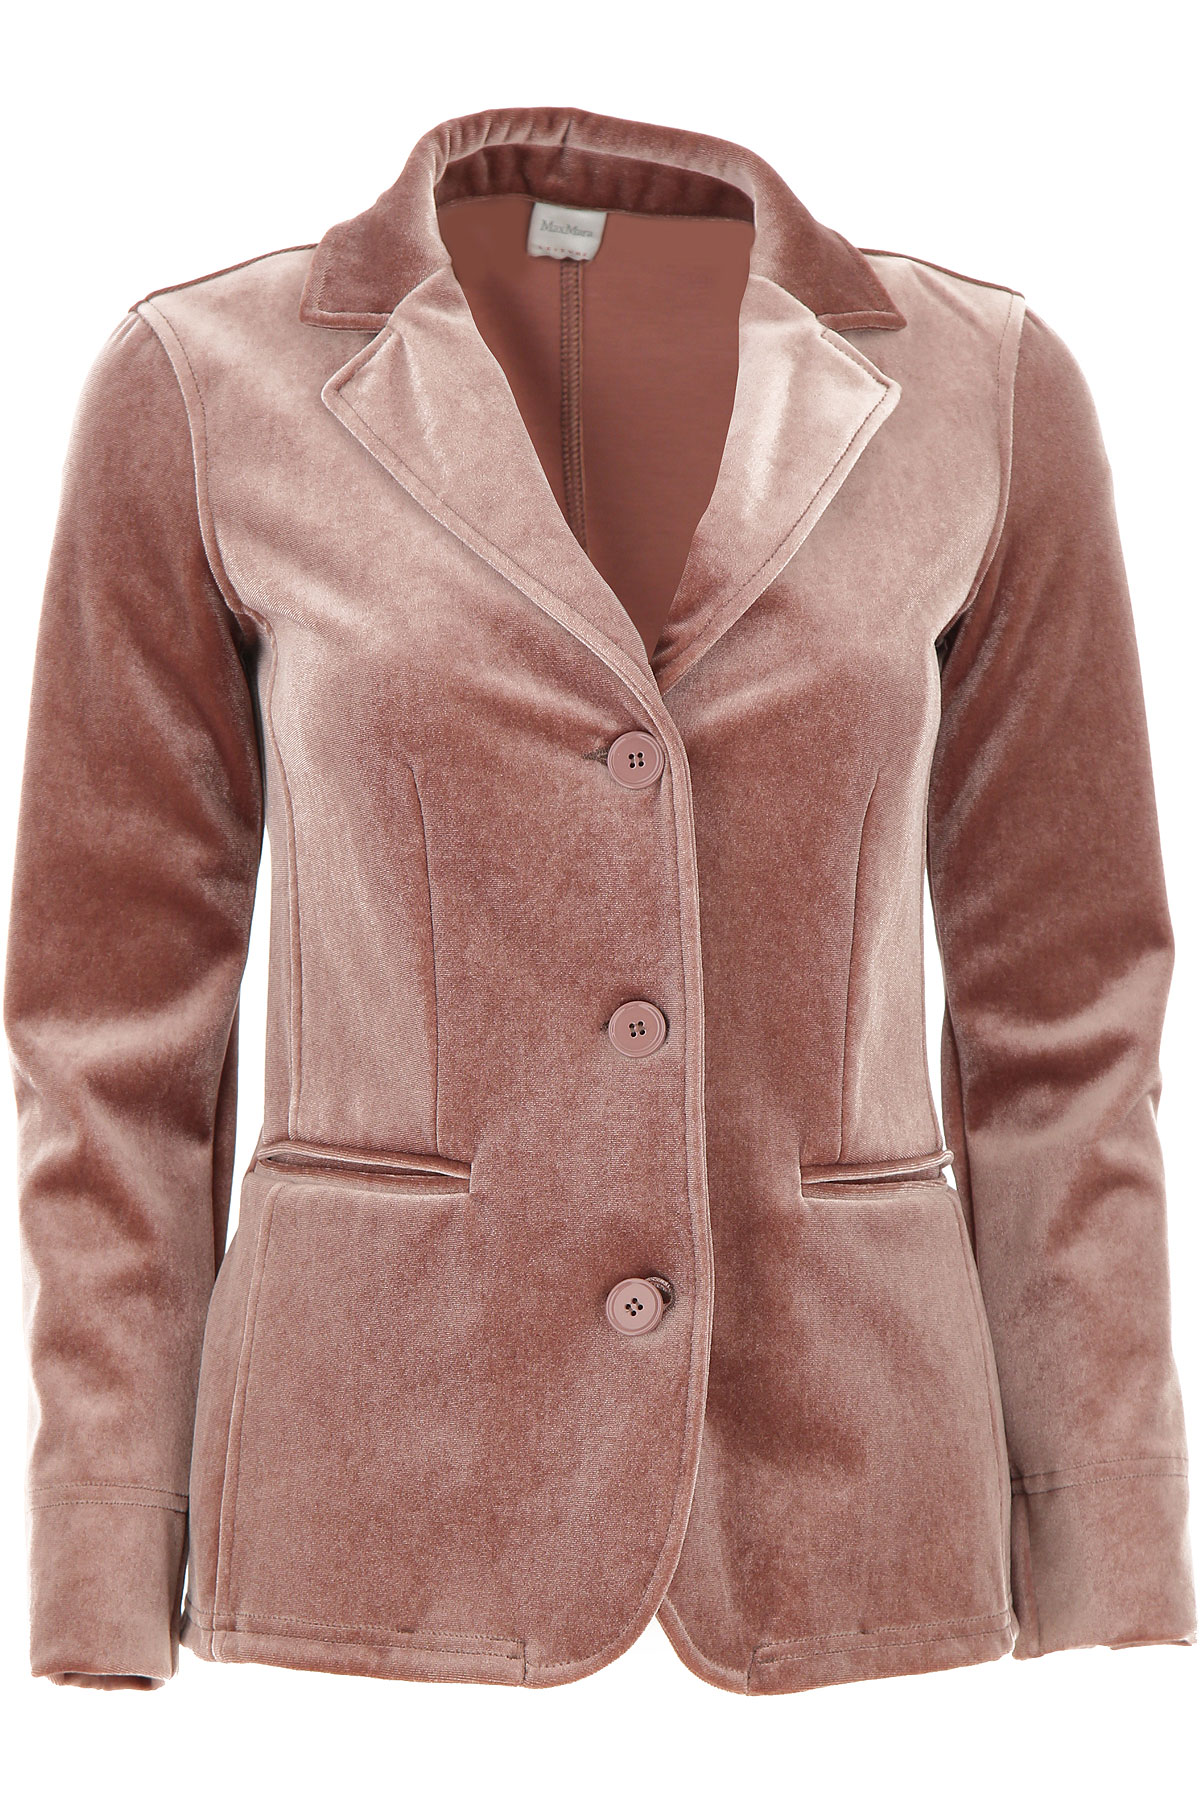 Max Mara Blazer for Women On Sale, antique pink, polyestere, 2019, 4 6